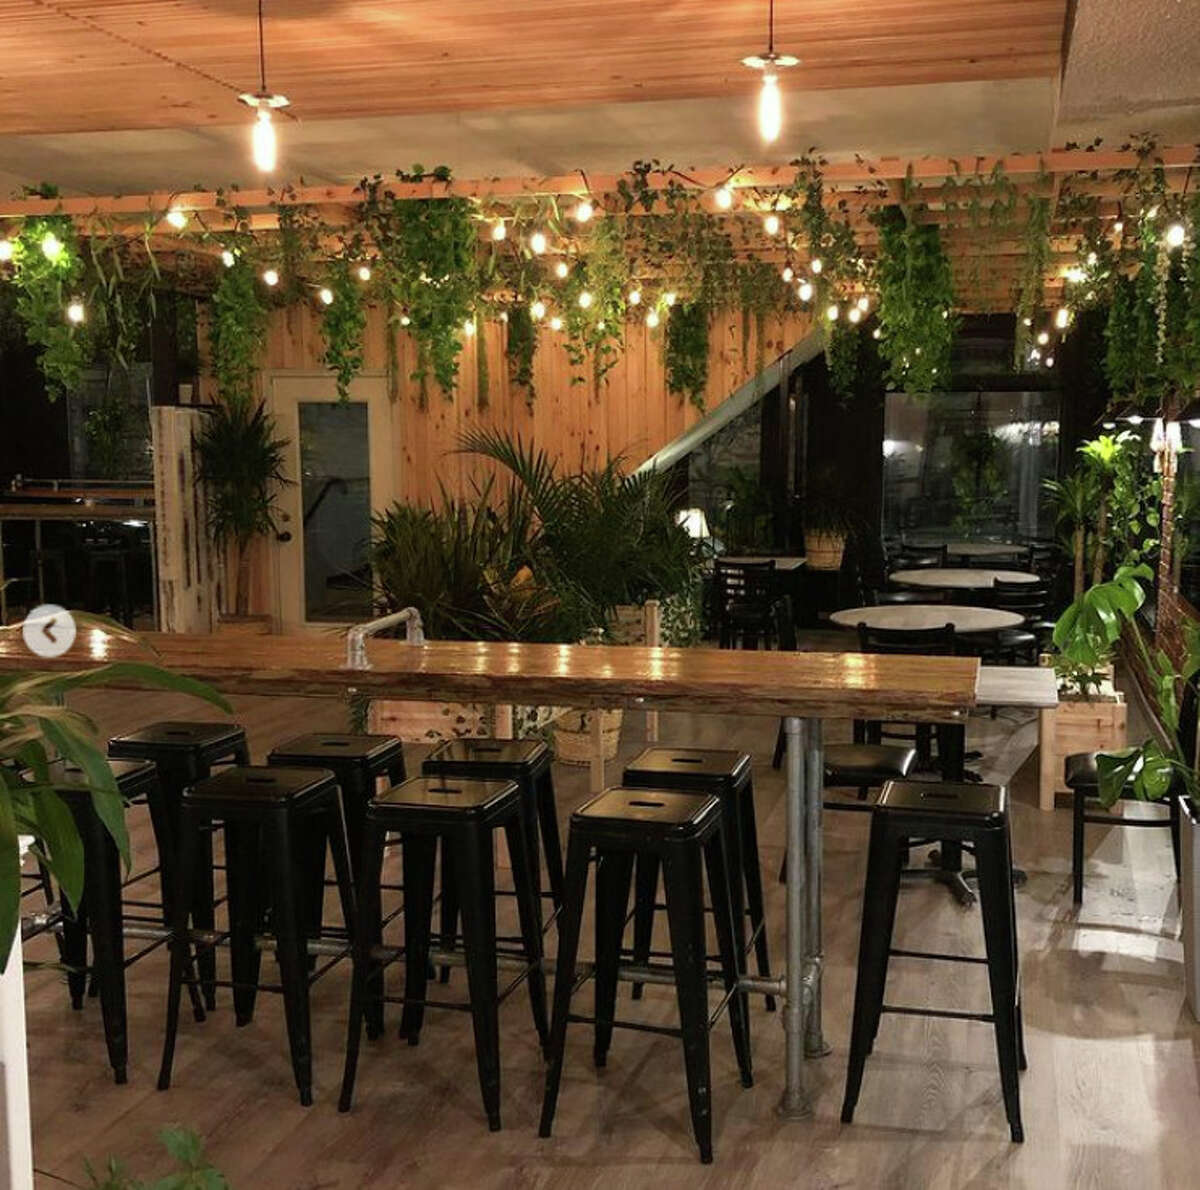 LAX Restaurant & Lounge, open since fall 2013 at 205 Lark St., is being redeveloped as Bar Vegan, which will feature plant-based decor and food as well as all-vegan beer, wine, cider and spirits. A soft opening, with select small-plate options and drinks, will be held Sept. 24 and 25, with a grand opening in October. Read more.